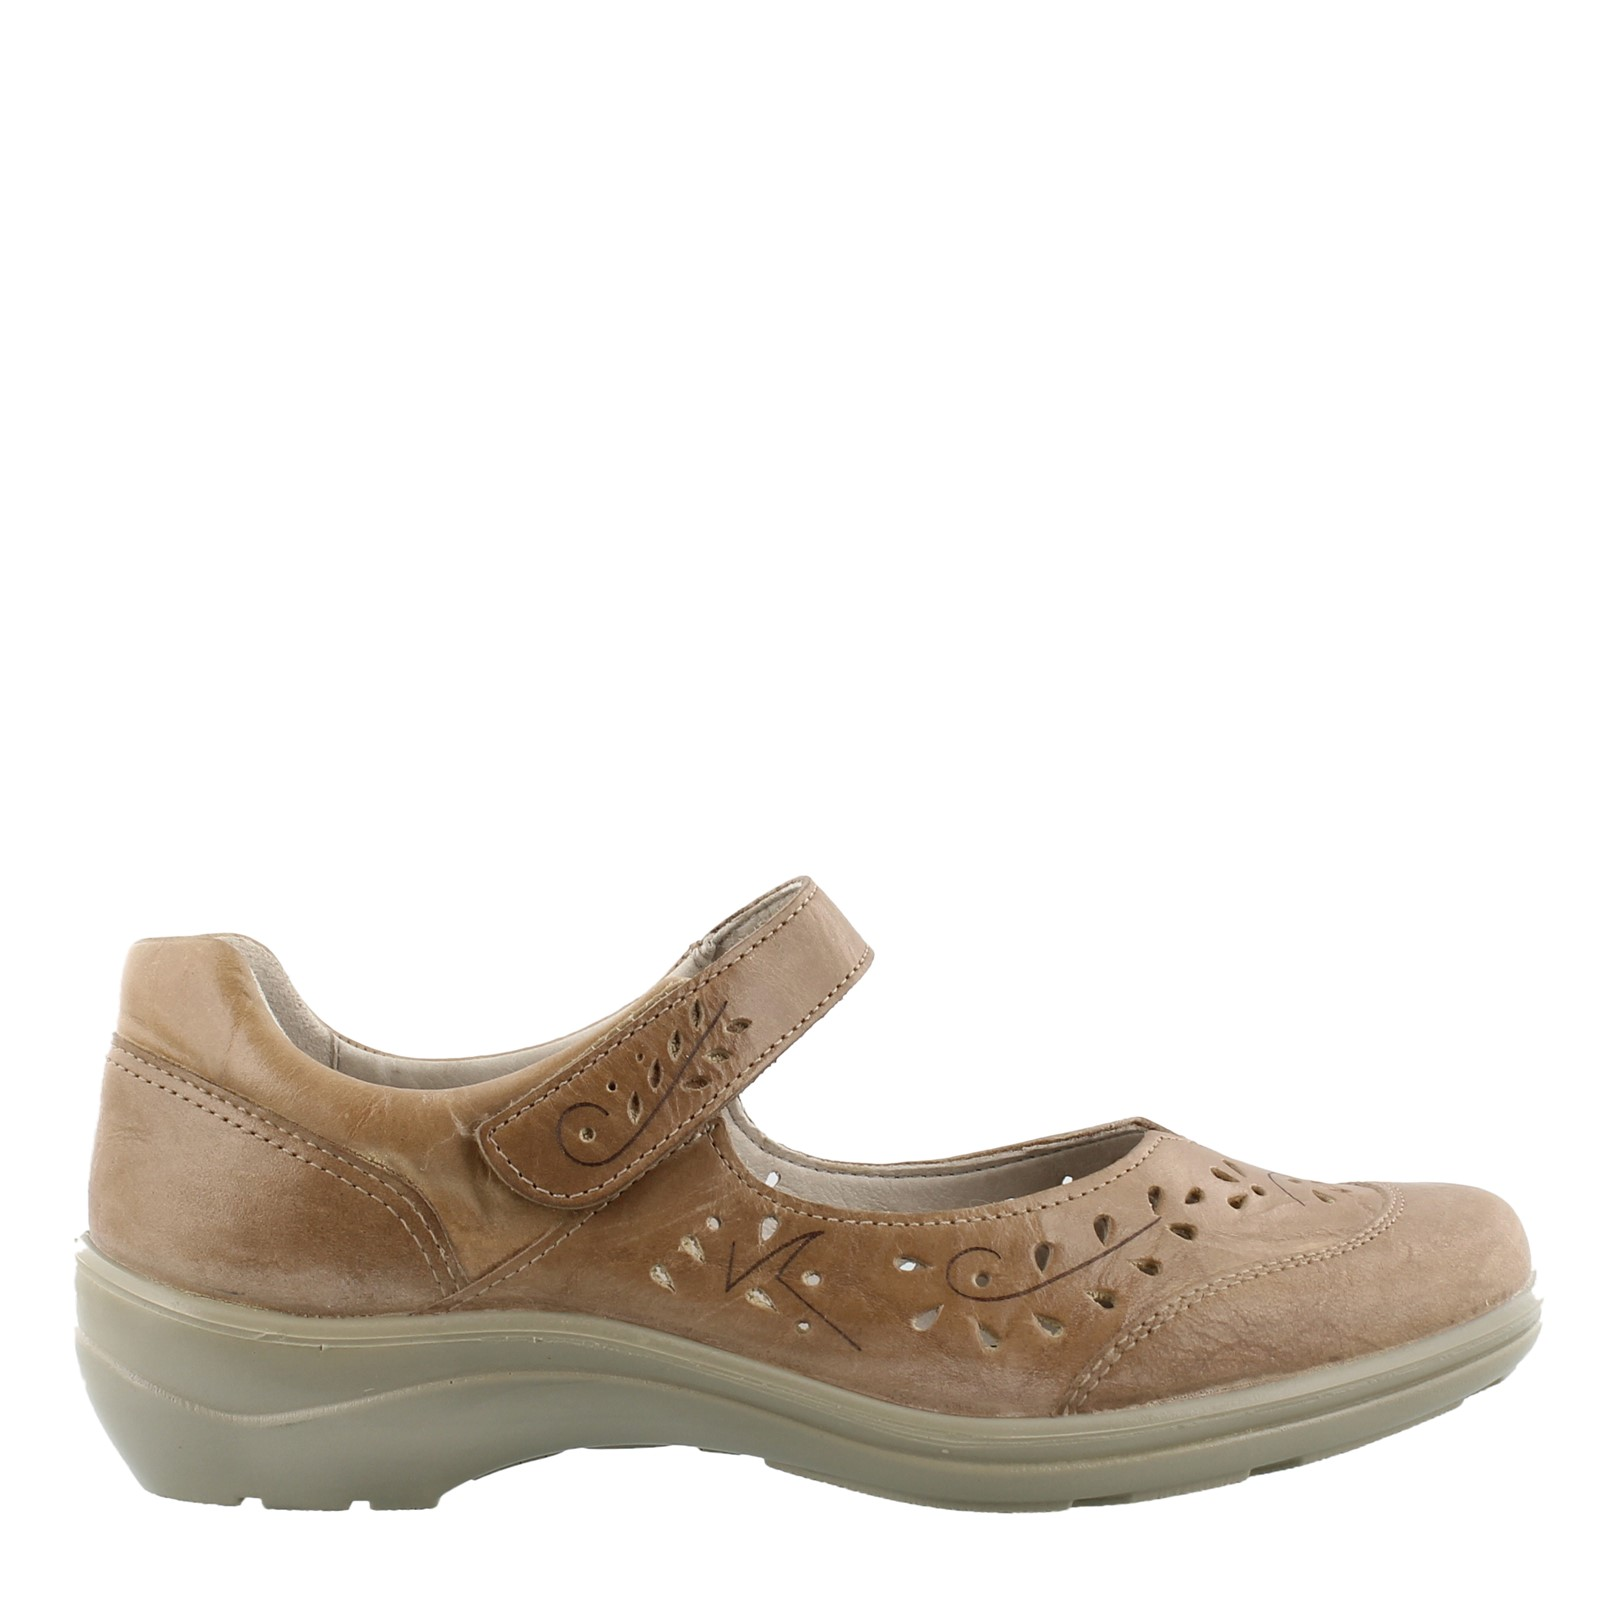 Women's Romika, Cassie 54 Low Heel Shoes